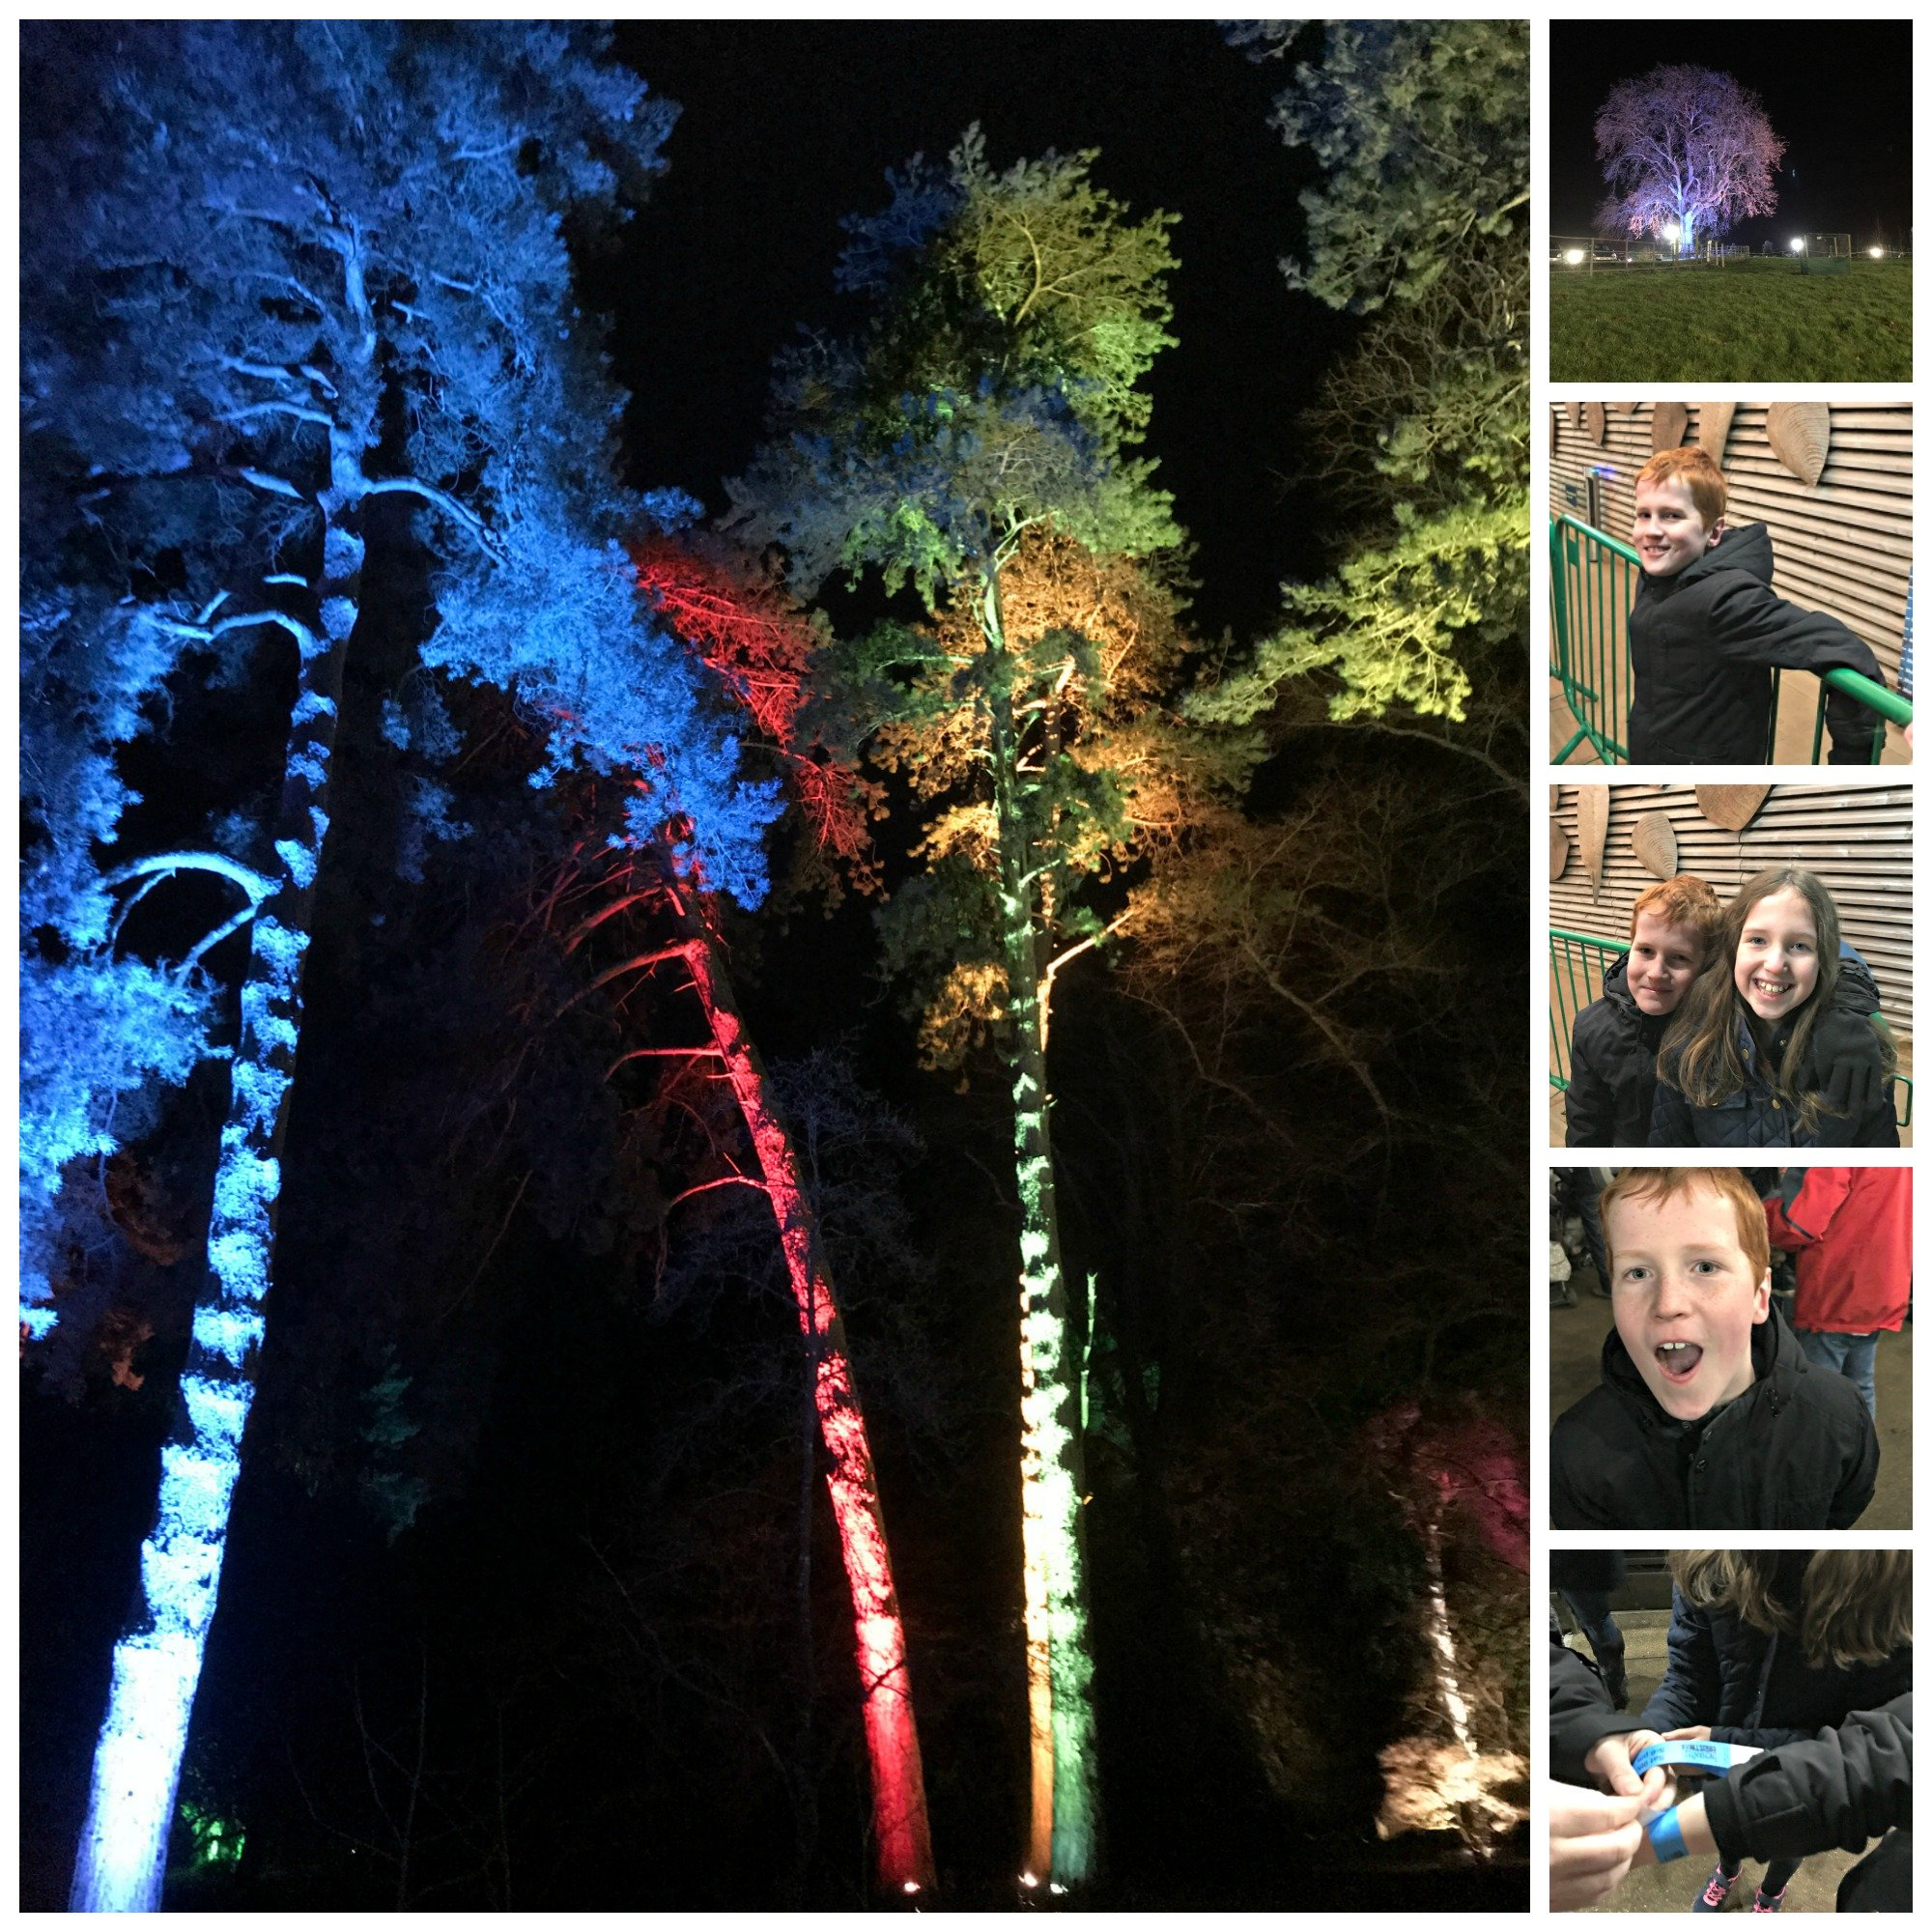 Collage of Caitlin and Ieuan at Westonbirt Arboretum Enchanted Christmas Trail 2017